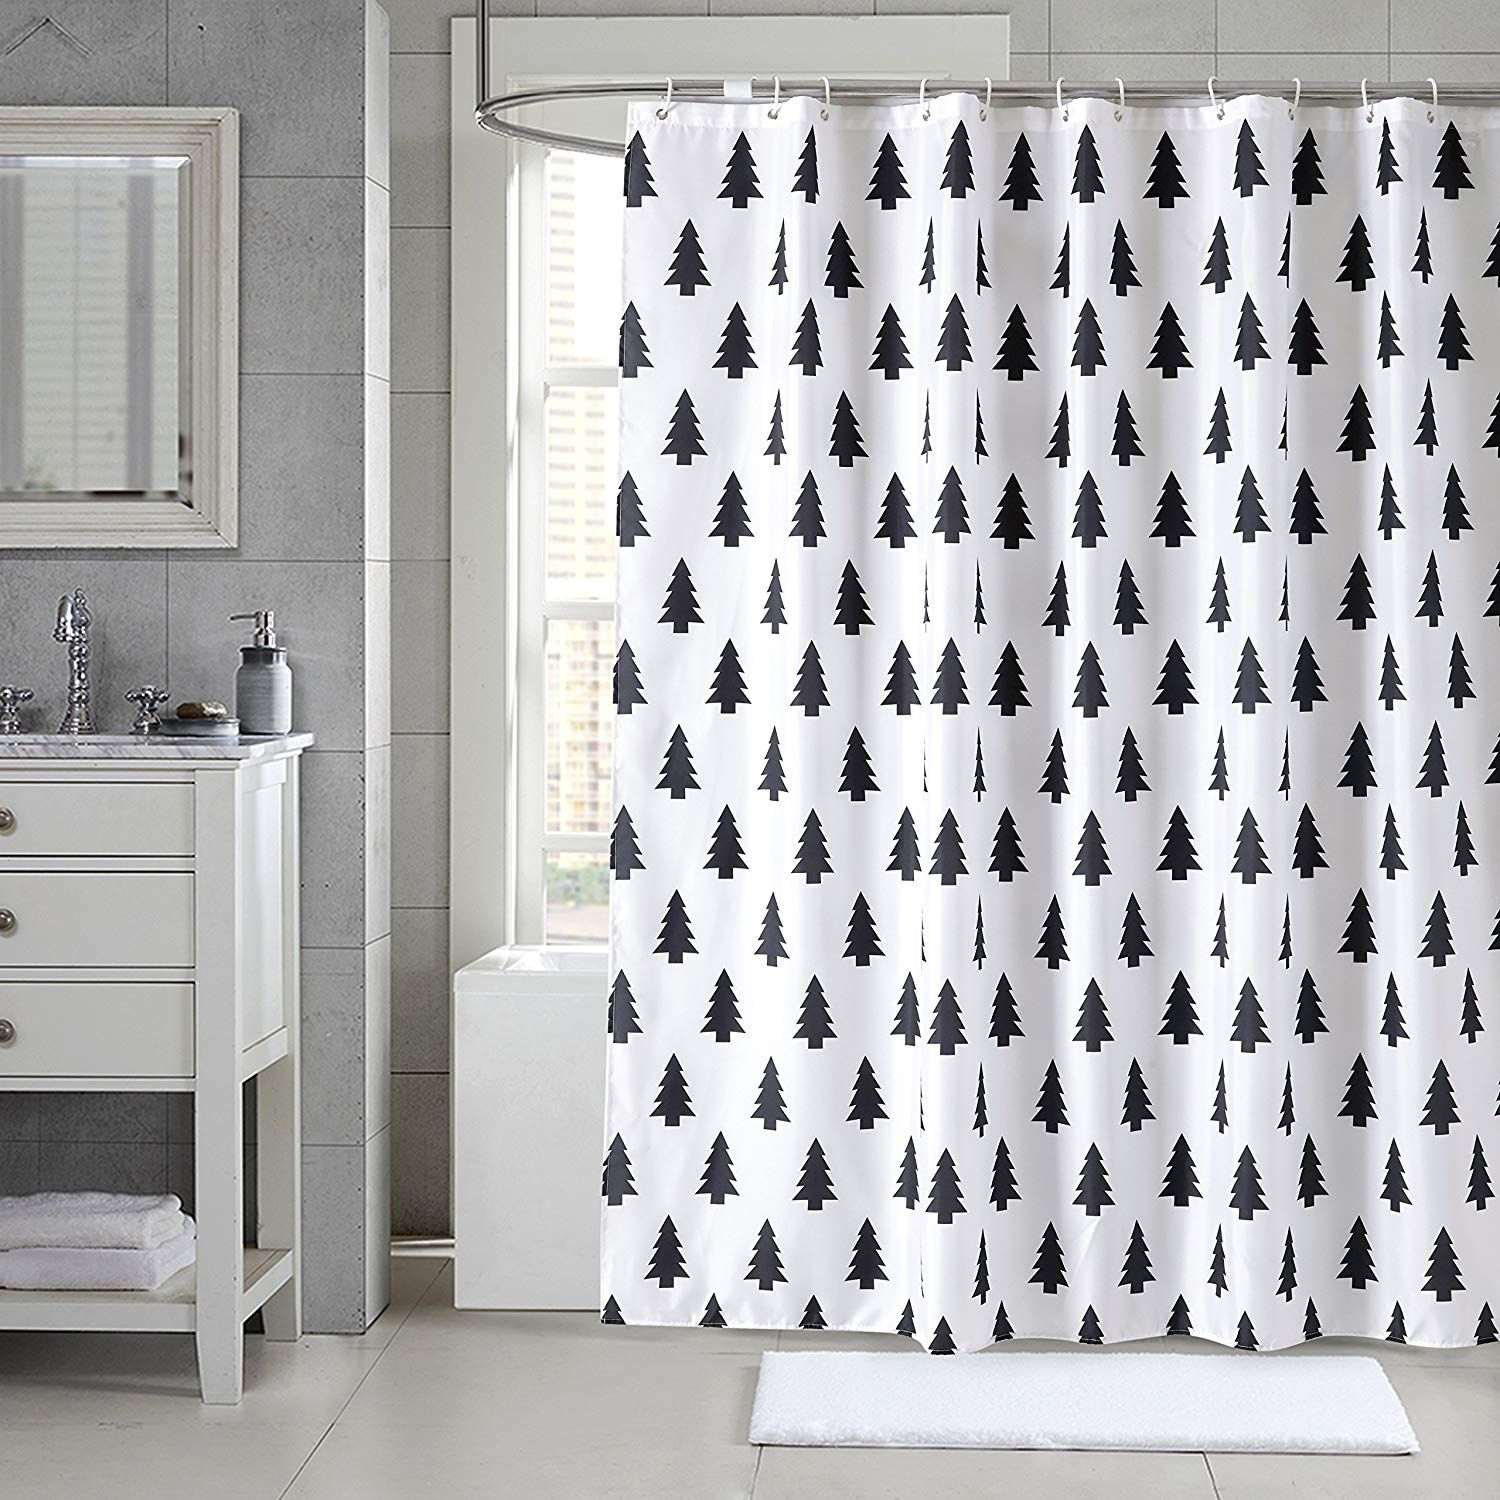 Love This Simple Black And White Curtain With With Trees Bathroom Shower Curtain Sets Fabric Shower Curtains Cloth Shower Curtain